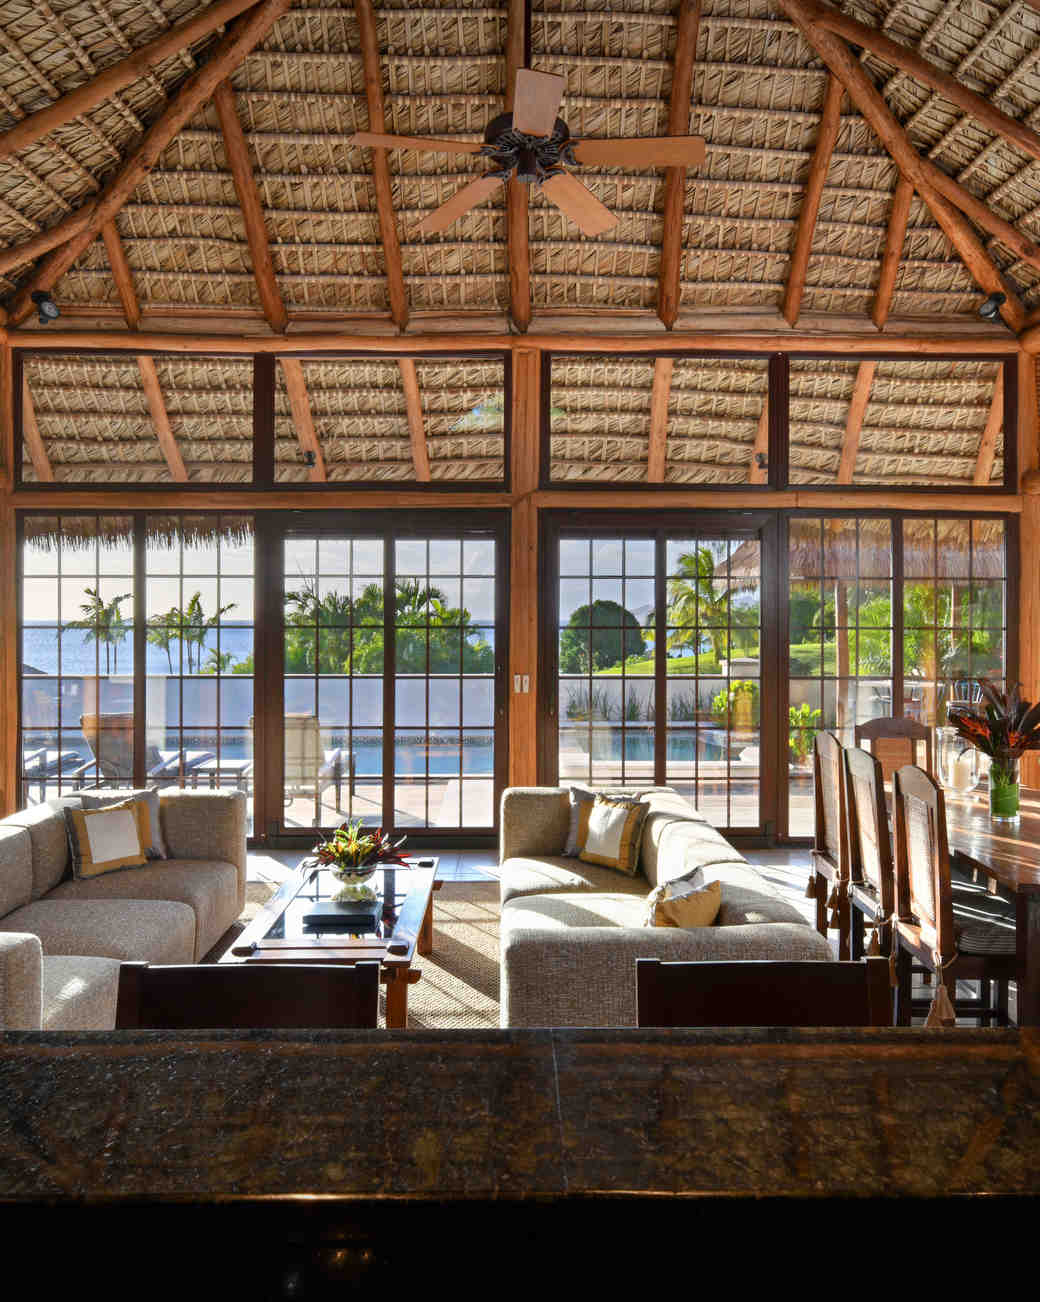 private-islands-paradise-beach-living-dining-room-1015.jpg